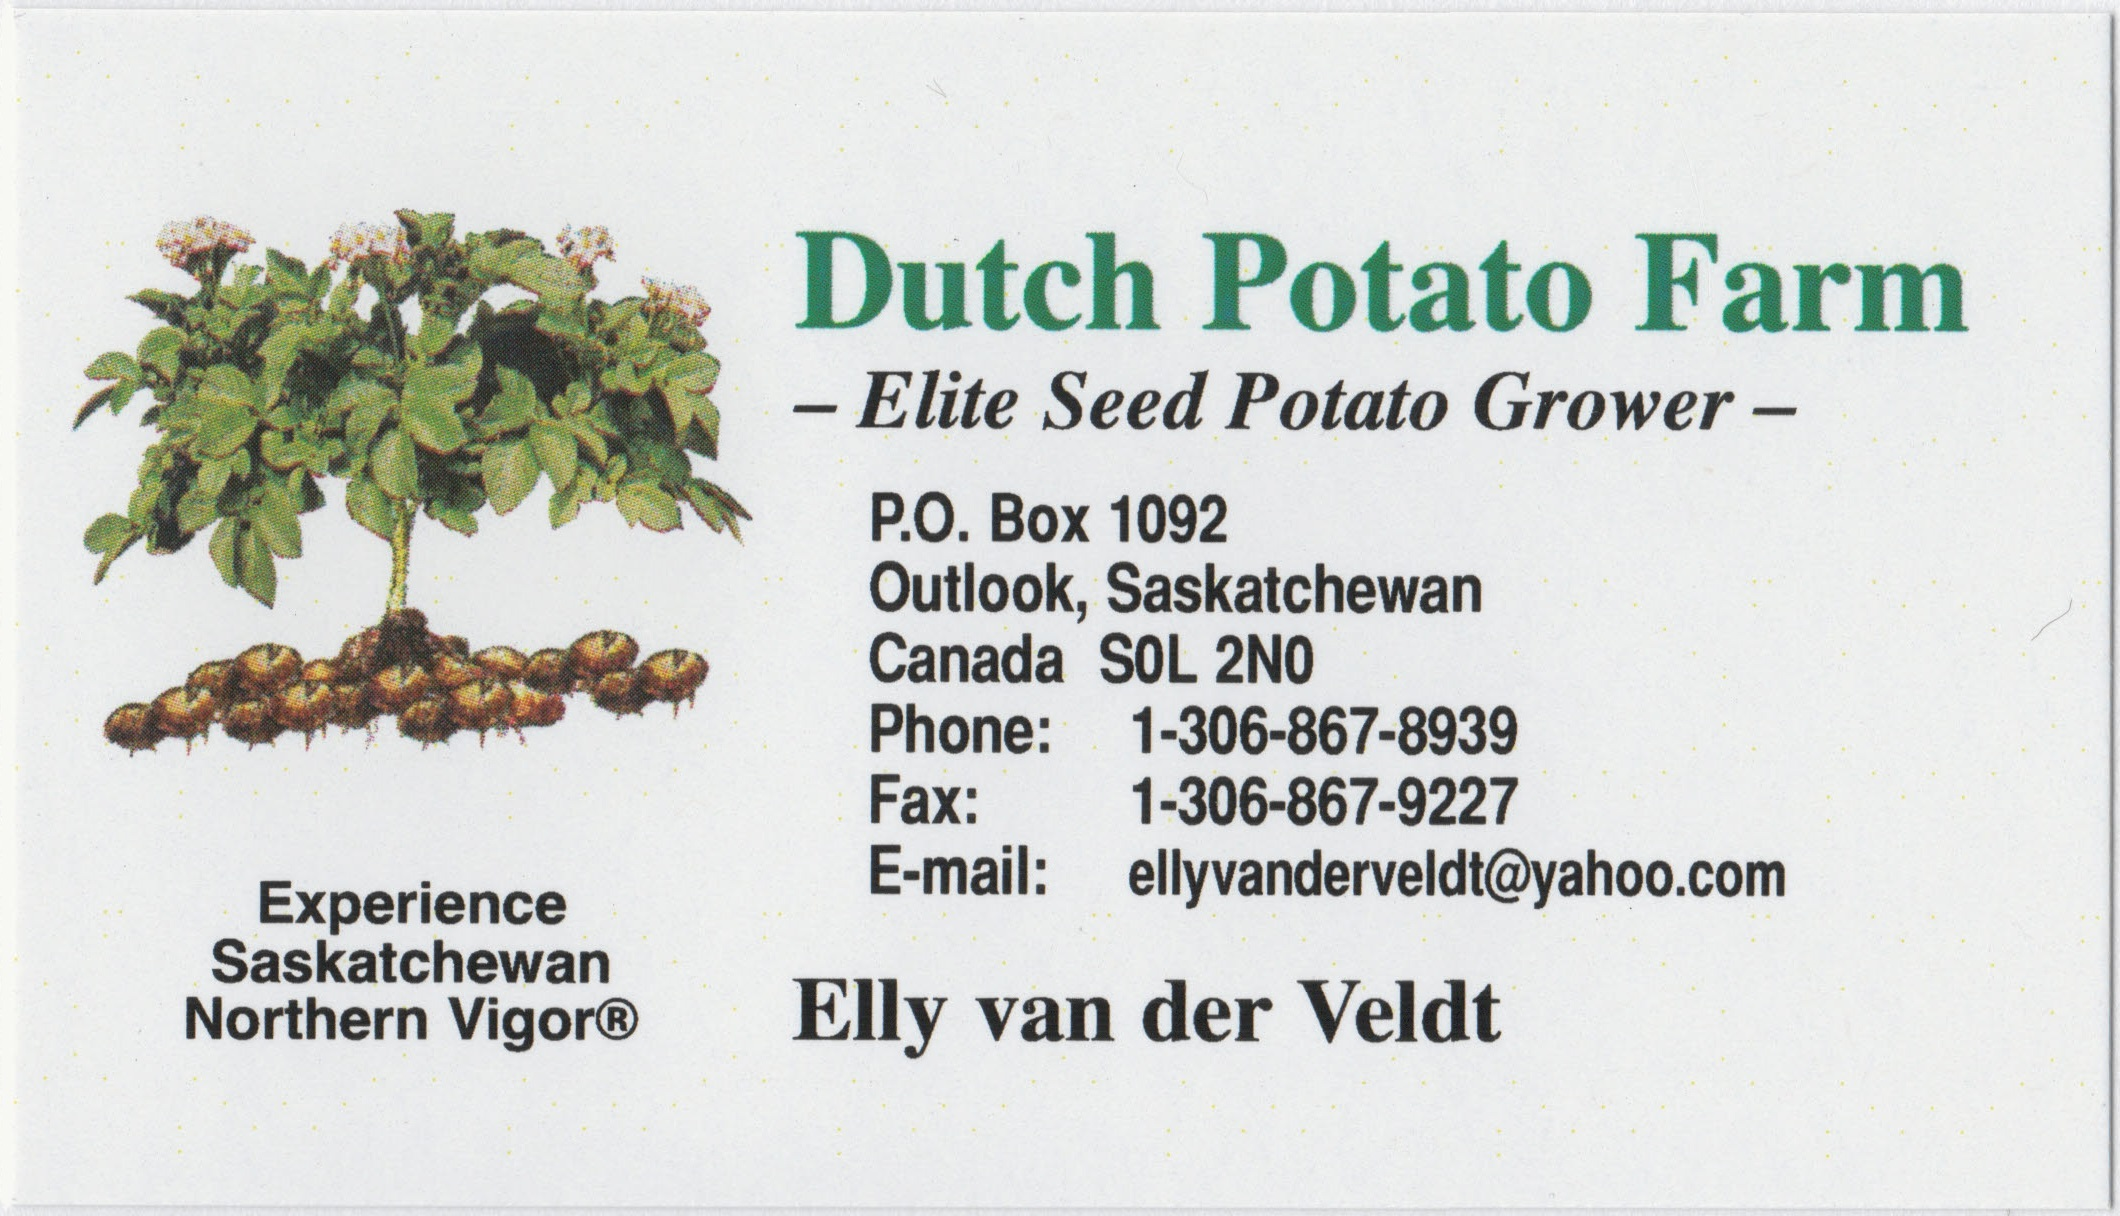 Dutch Potato Farm